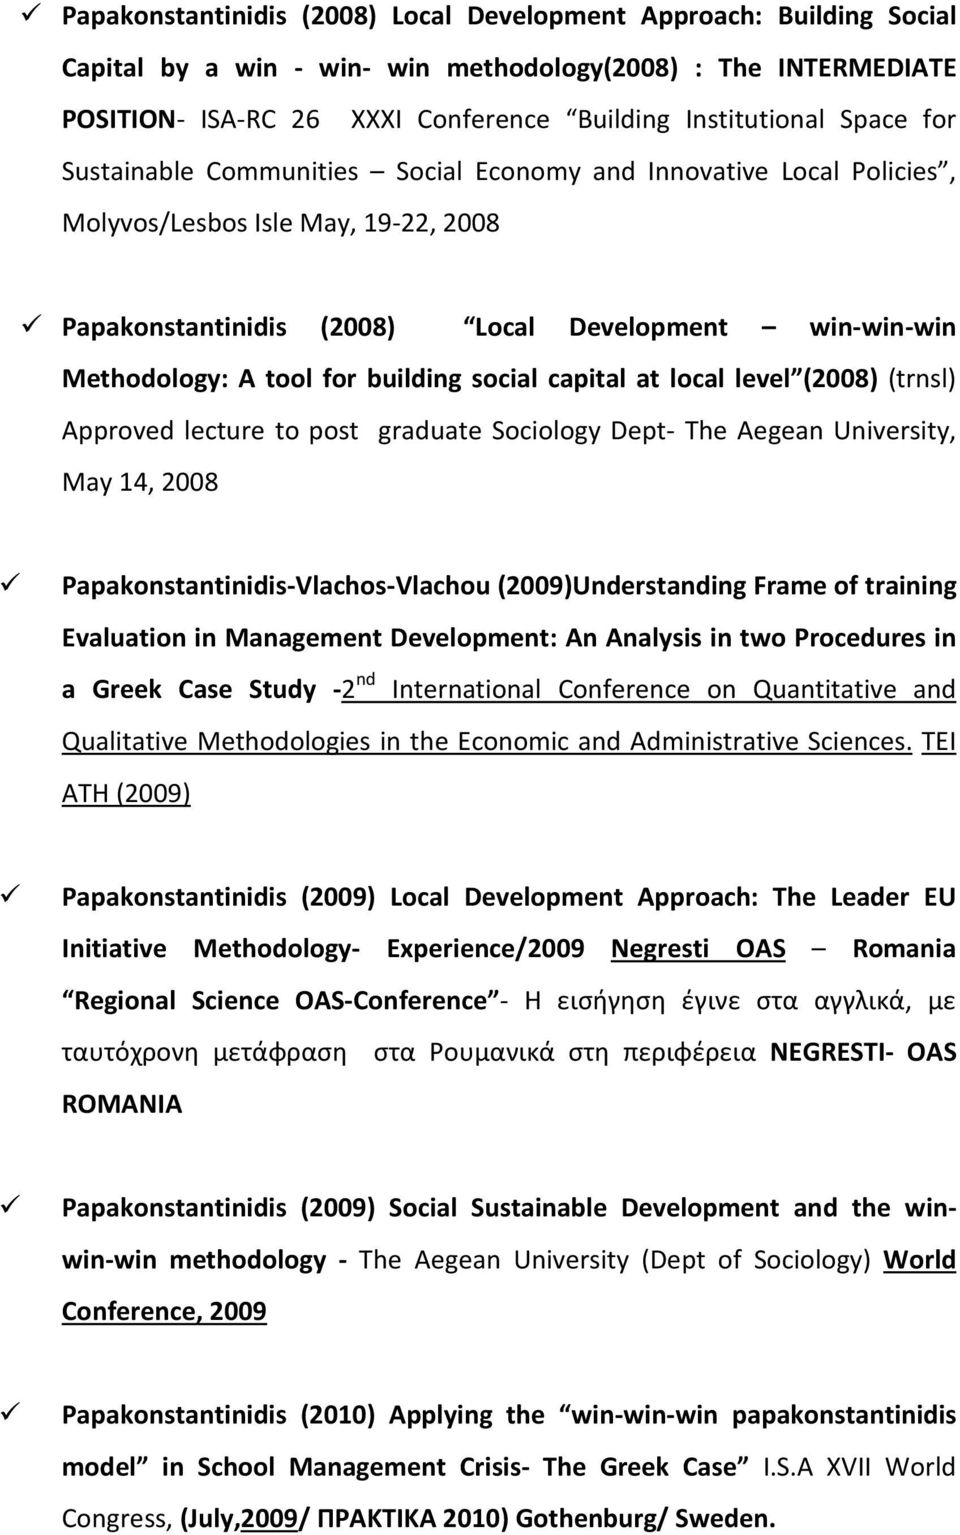 social capital at local level (2008) (trnsl) Approved lecture to post graduate Sociology Dept- The Aegean University, May 14, 2008 Papakonstantinidis-Vlachos-Vlachou (2009)Understanding Frame of